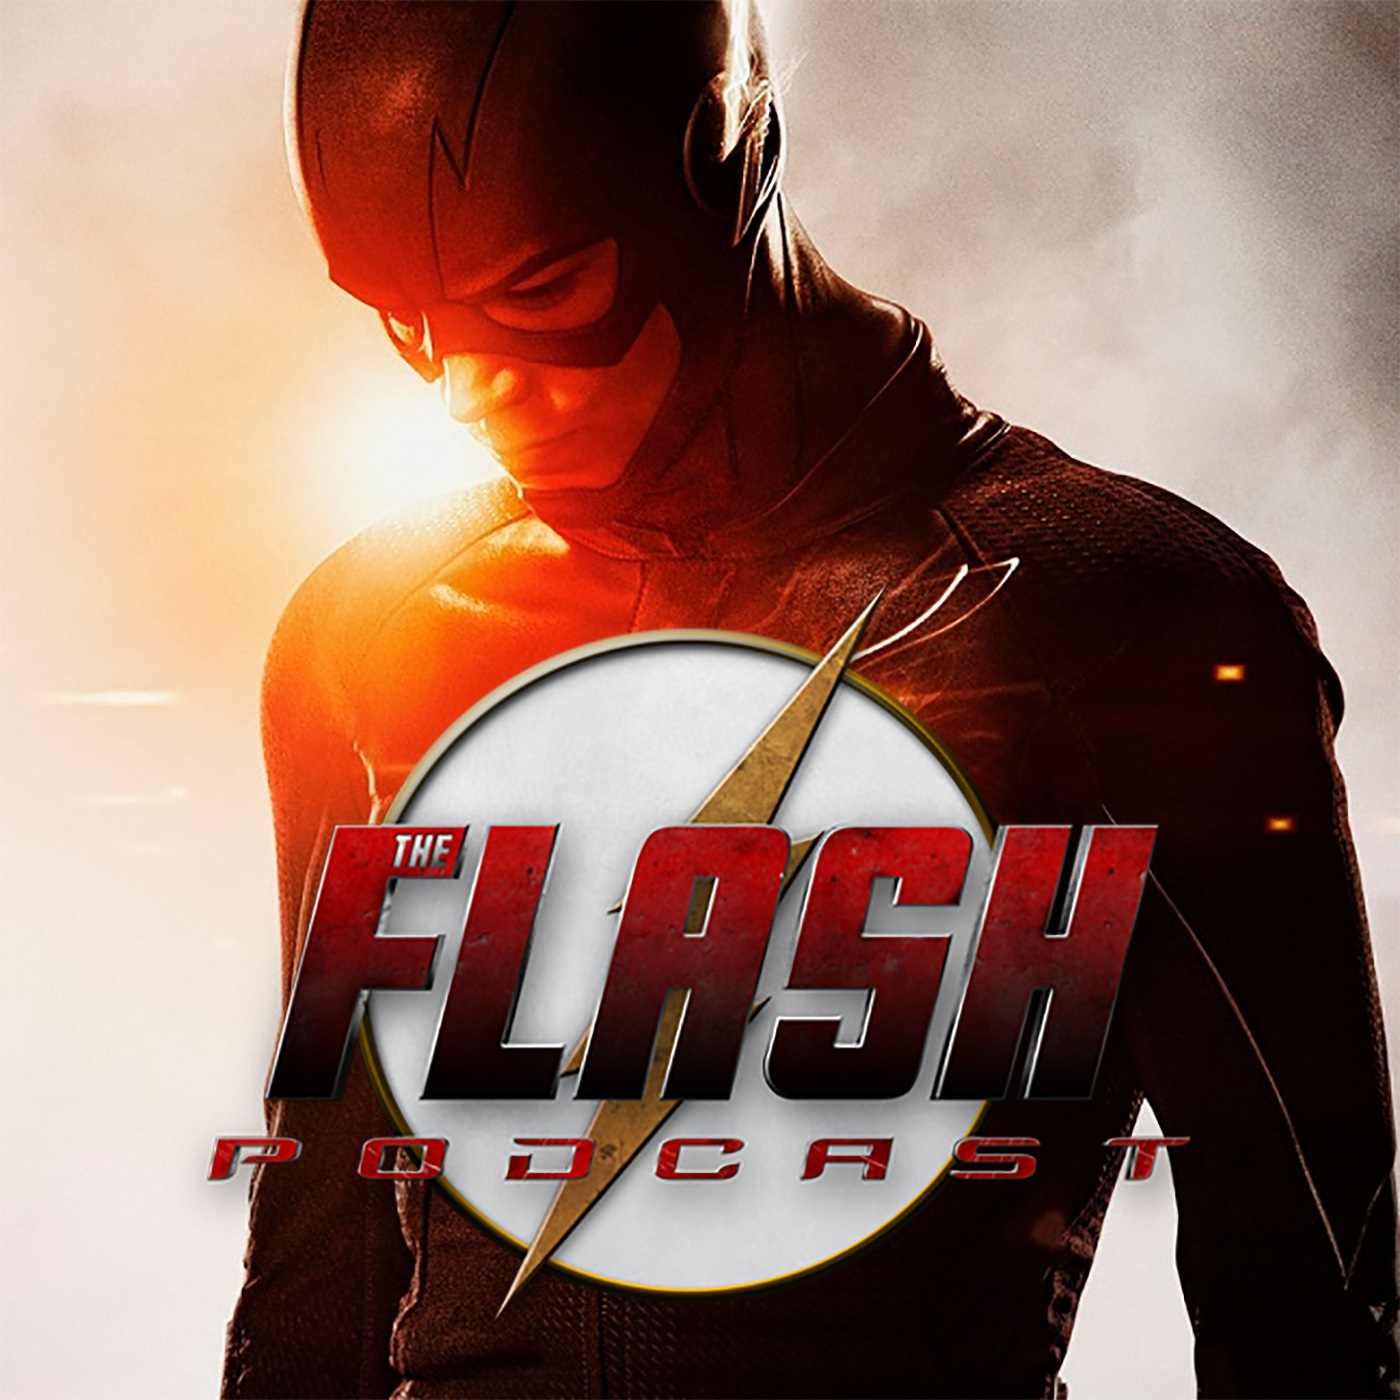 The Flash Podcast Season 2.5 - Episode 11: Harry Wells In Season 2